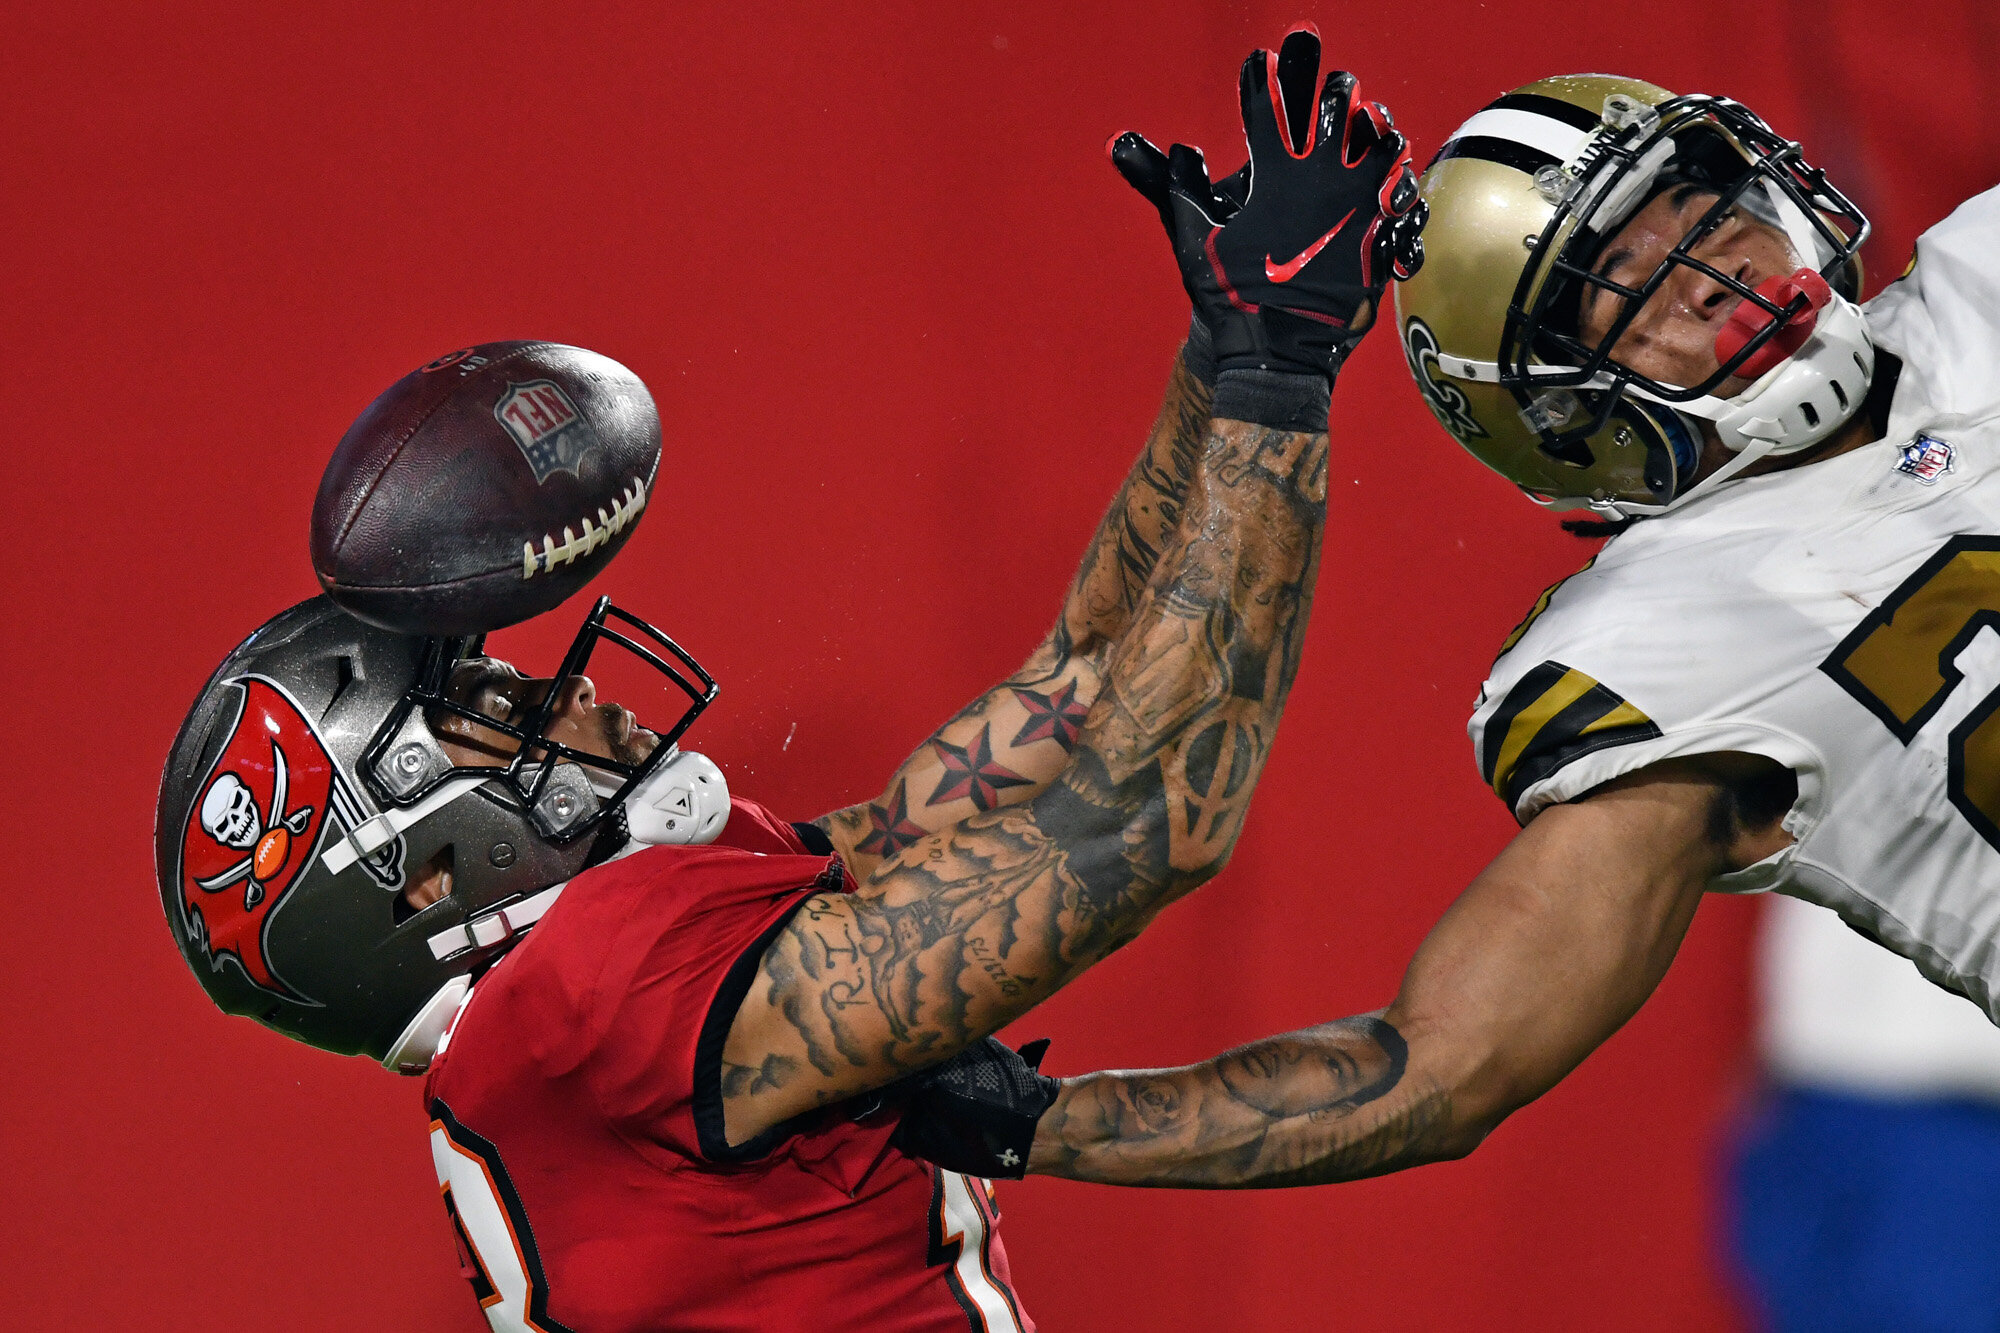 New Orleans Saints cornerback Marshon Lattimore, right, knocks the ball away from Tampa Bay Buccaneers wide receiver Mike Evans in the end zone on a fourth down during the second half of an NFL football game on Nov. 8, 2020, in Tampa, Fla. (AP Photo/Jason Behnken)